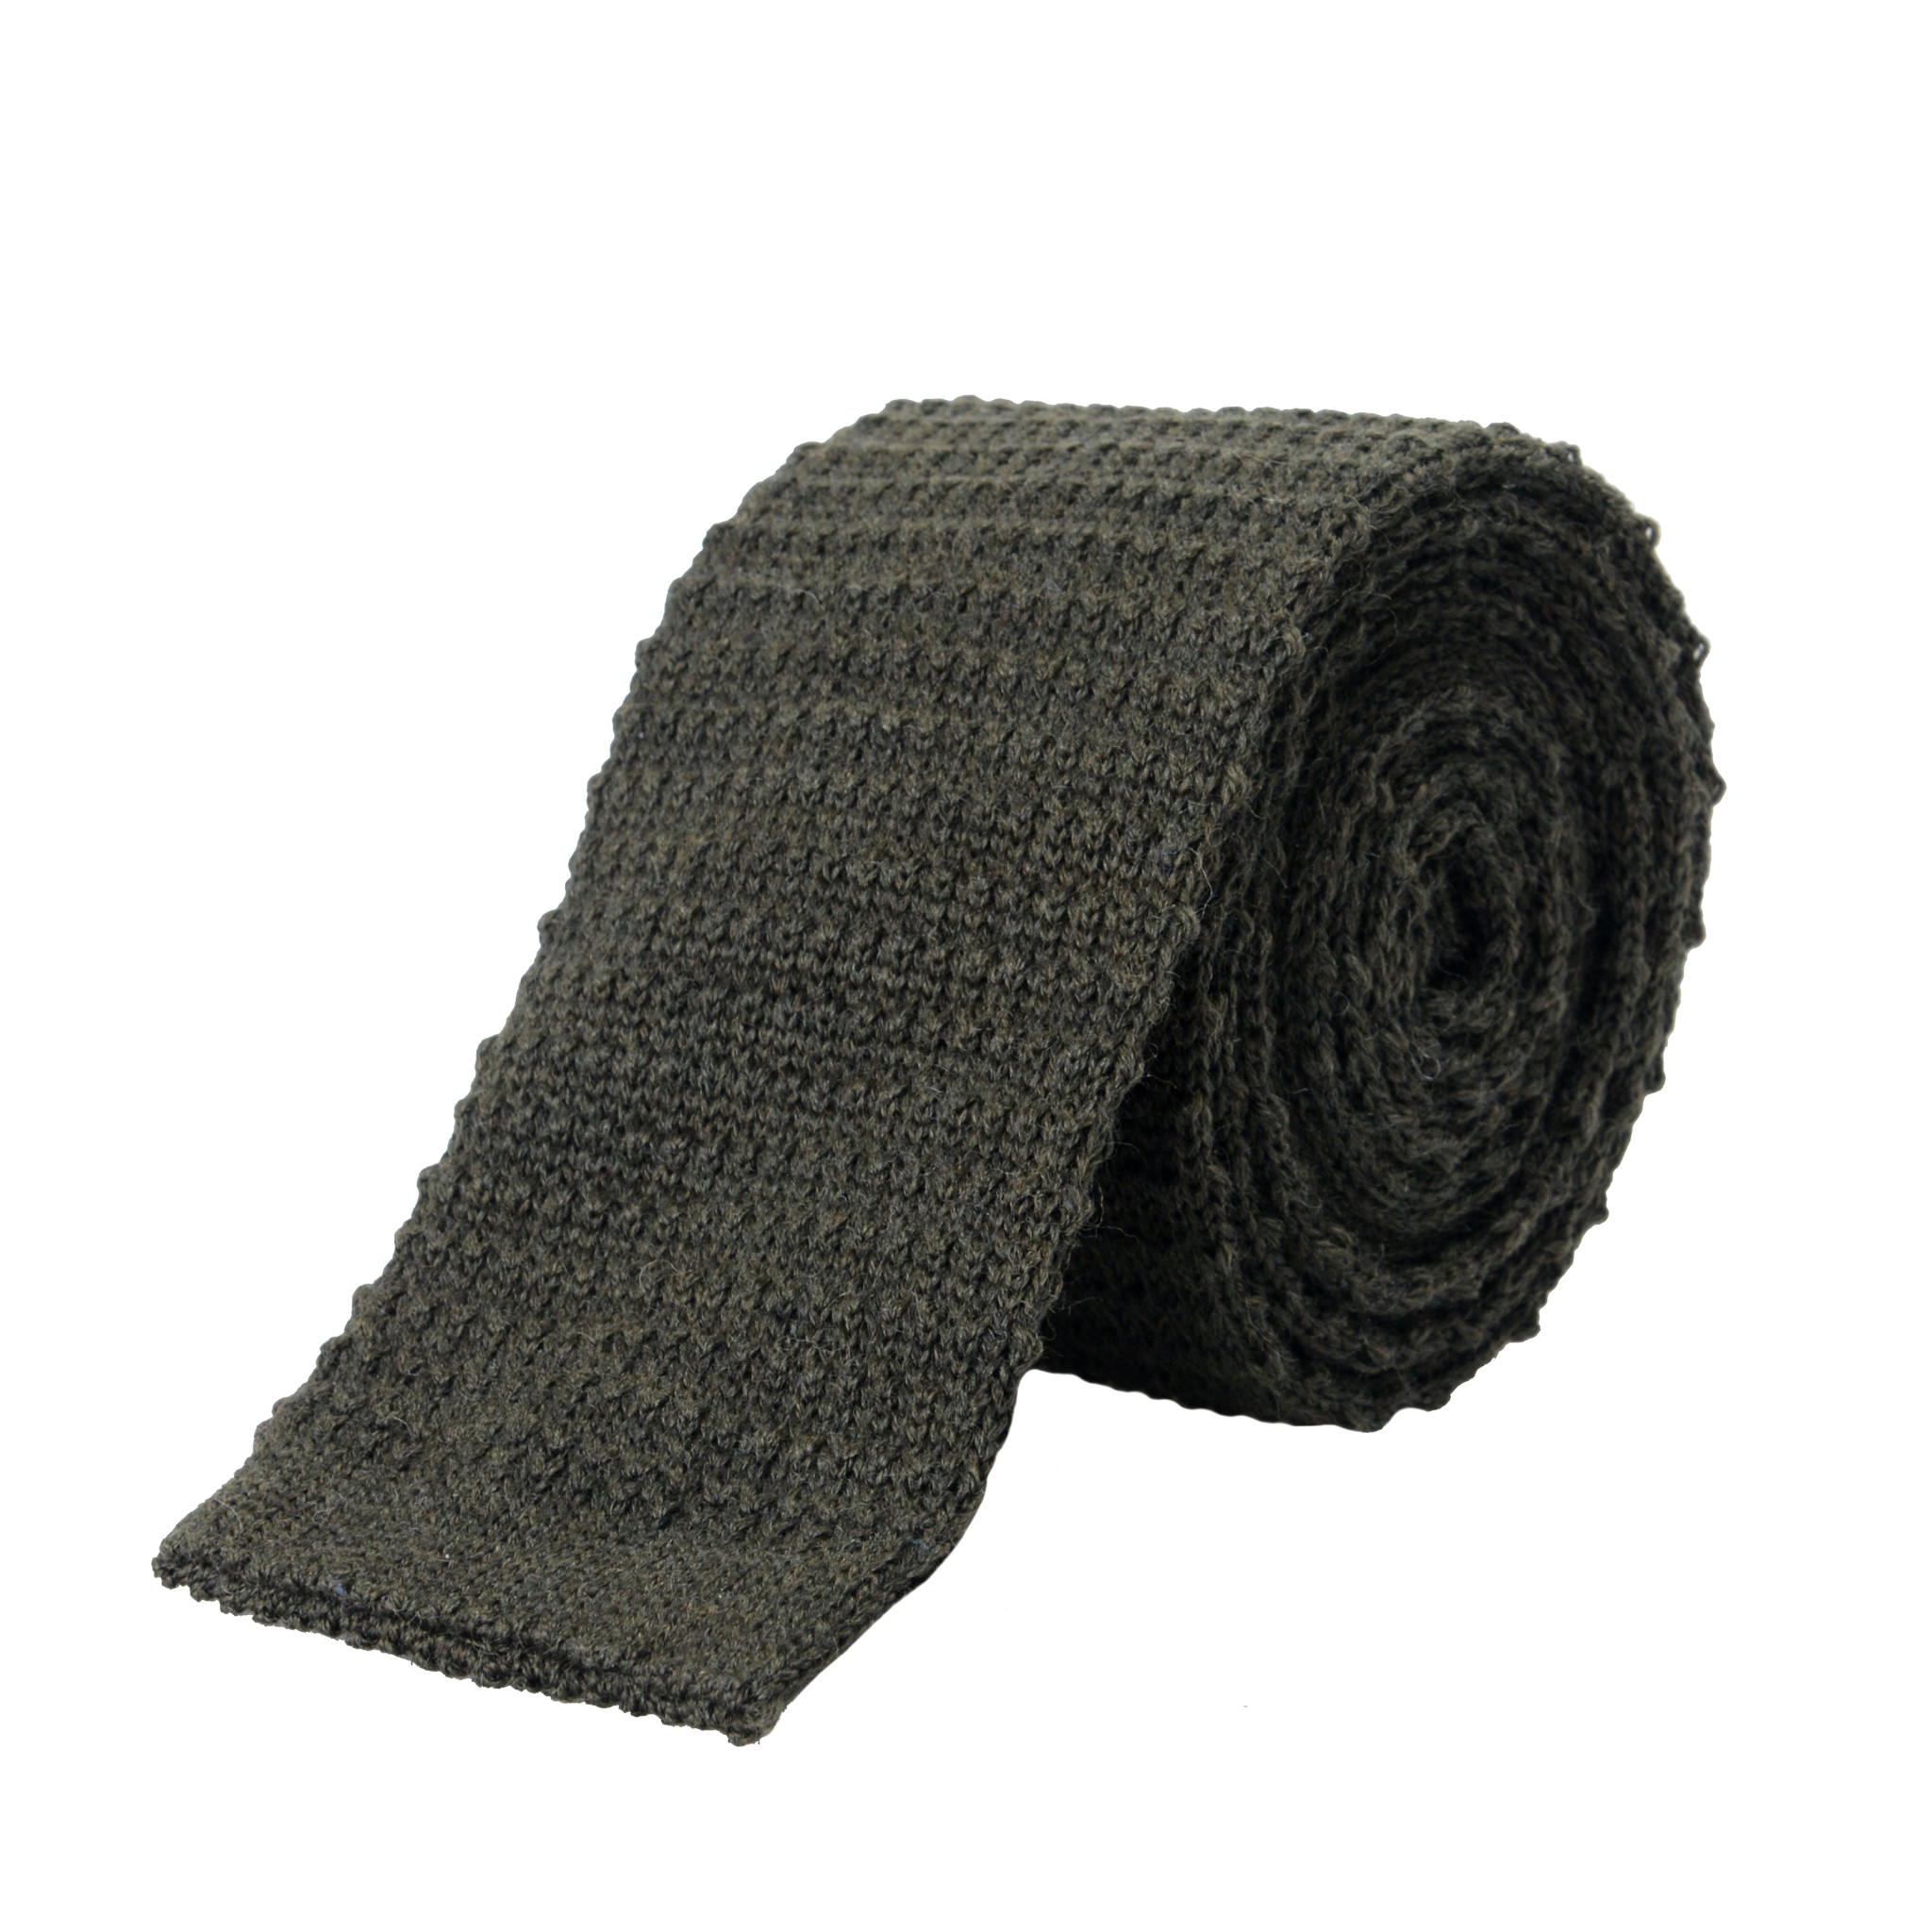 ed814bc4 Details about Hugo Boss Men's Olive Green 100% Wool Knitted Square End Tie